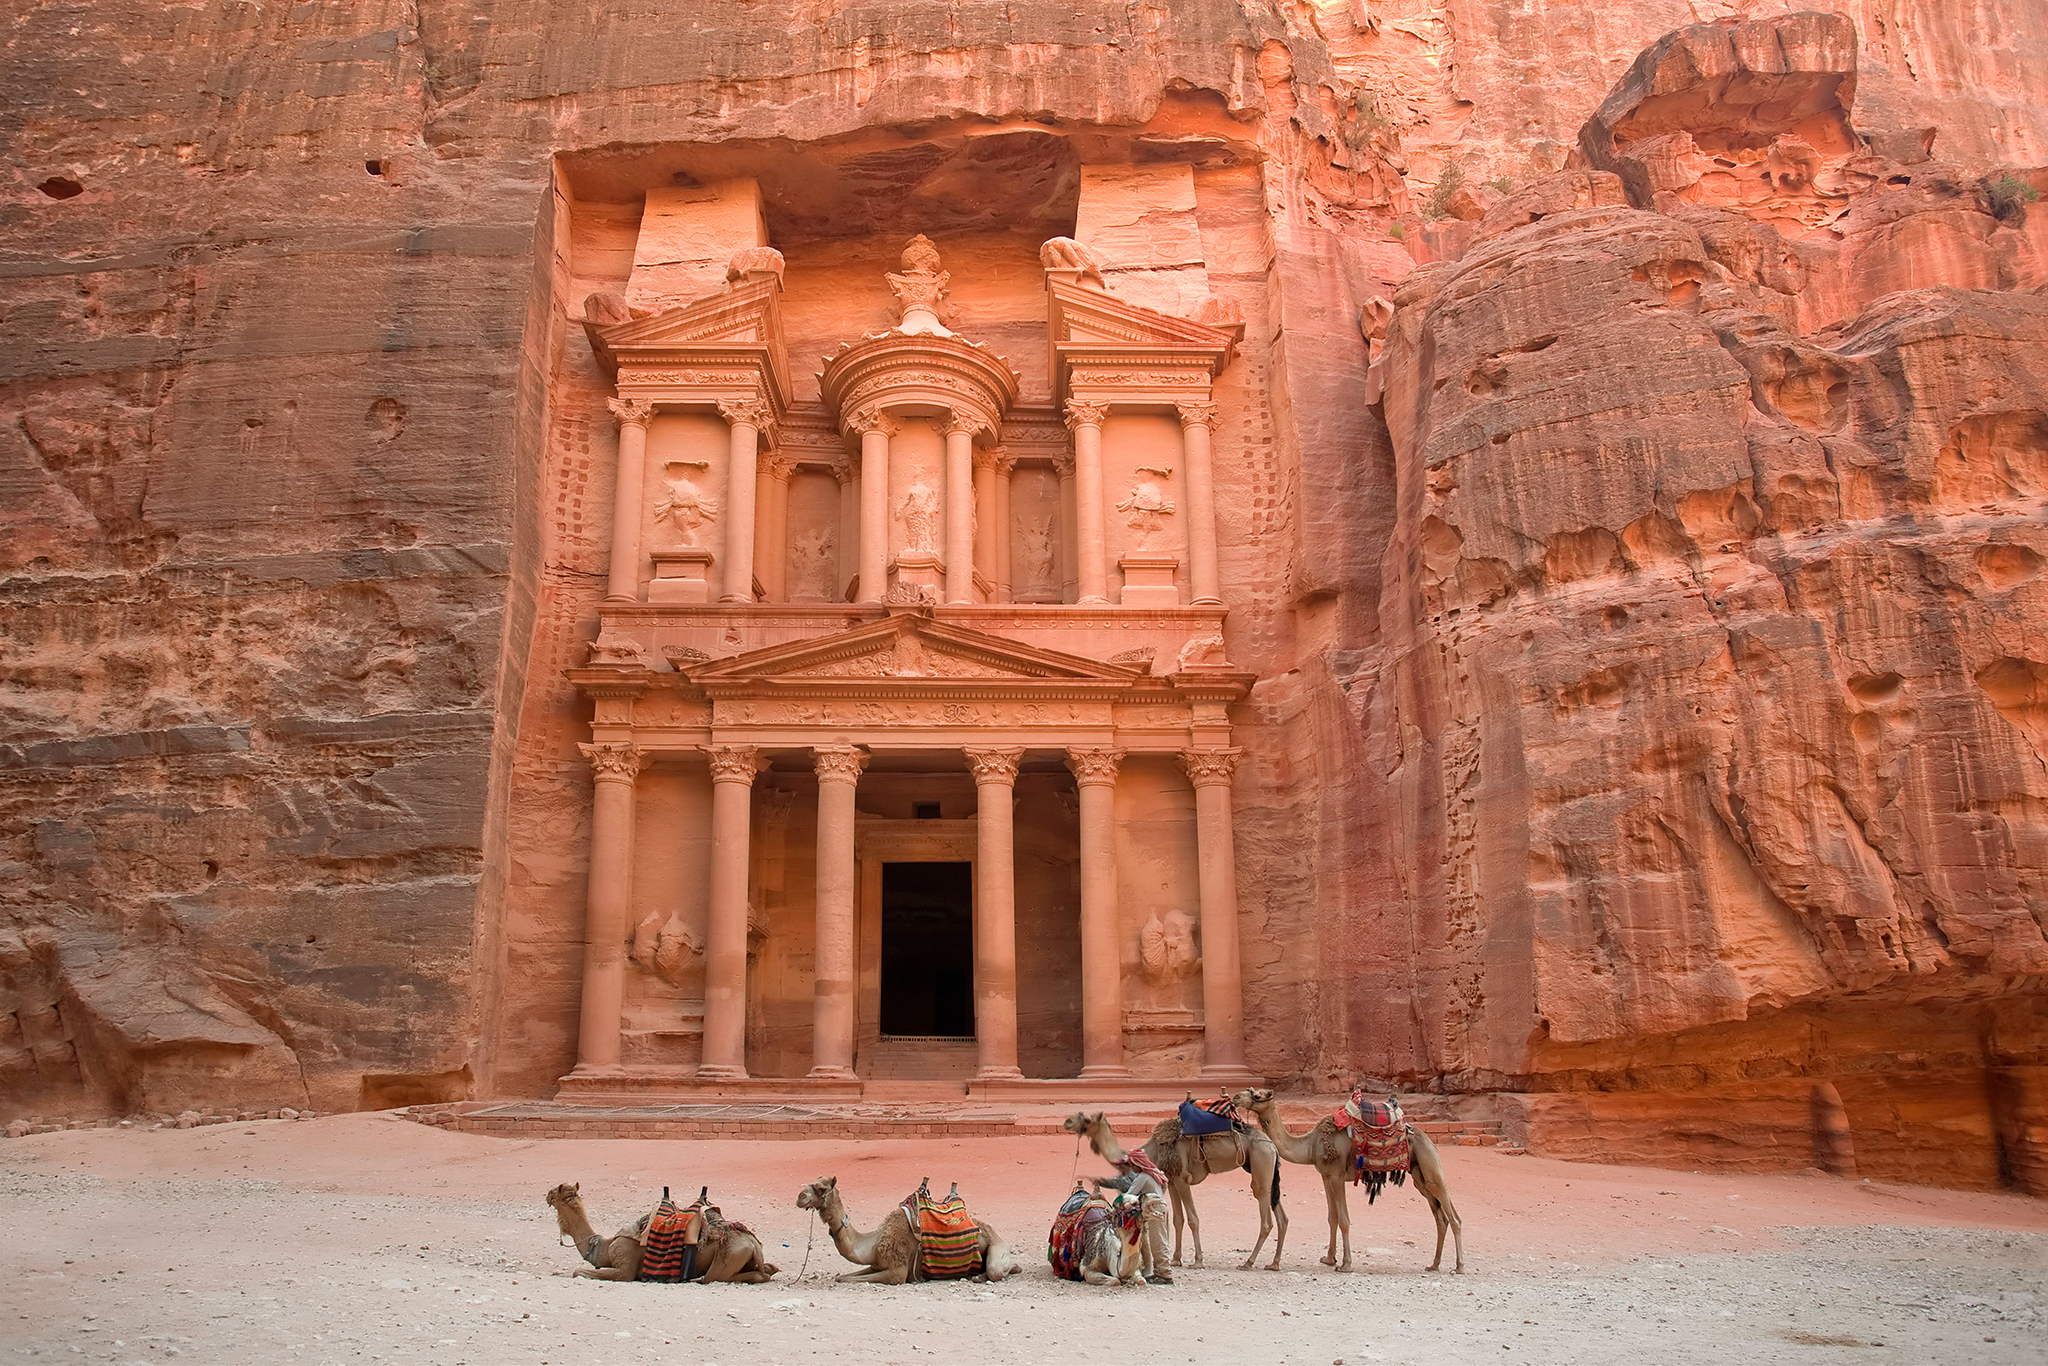 The Treasury (Al Khazneh), Petra (UNESCO world heritage site), Jordan.